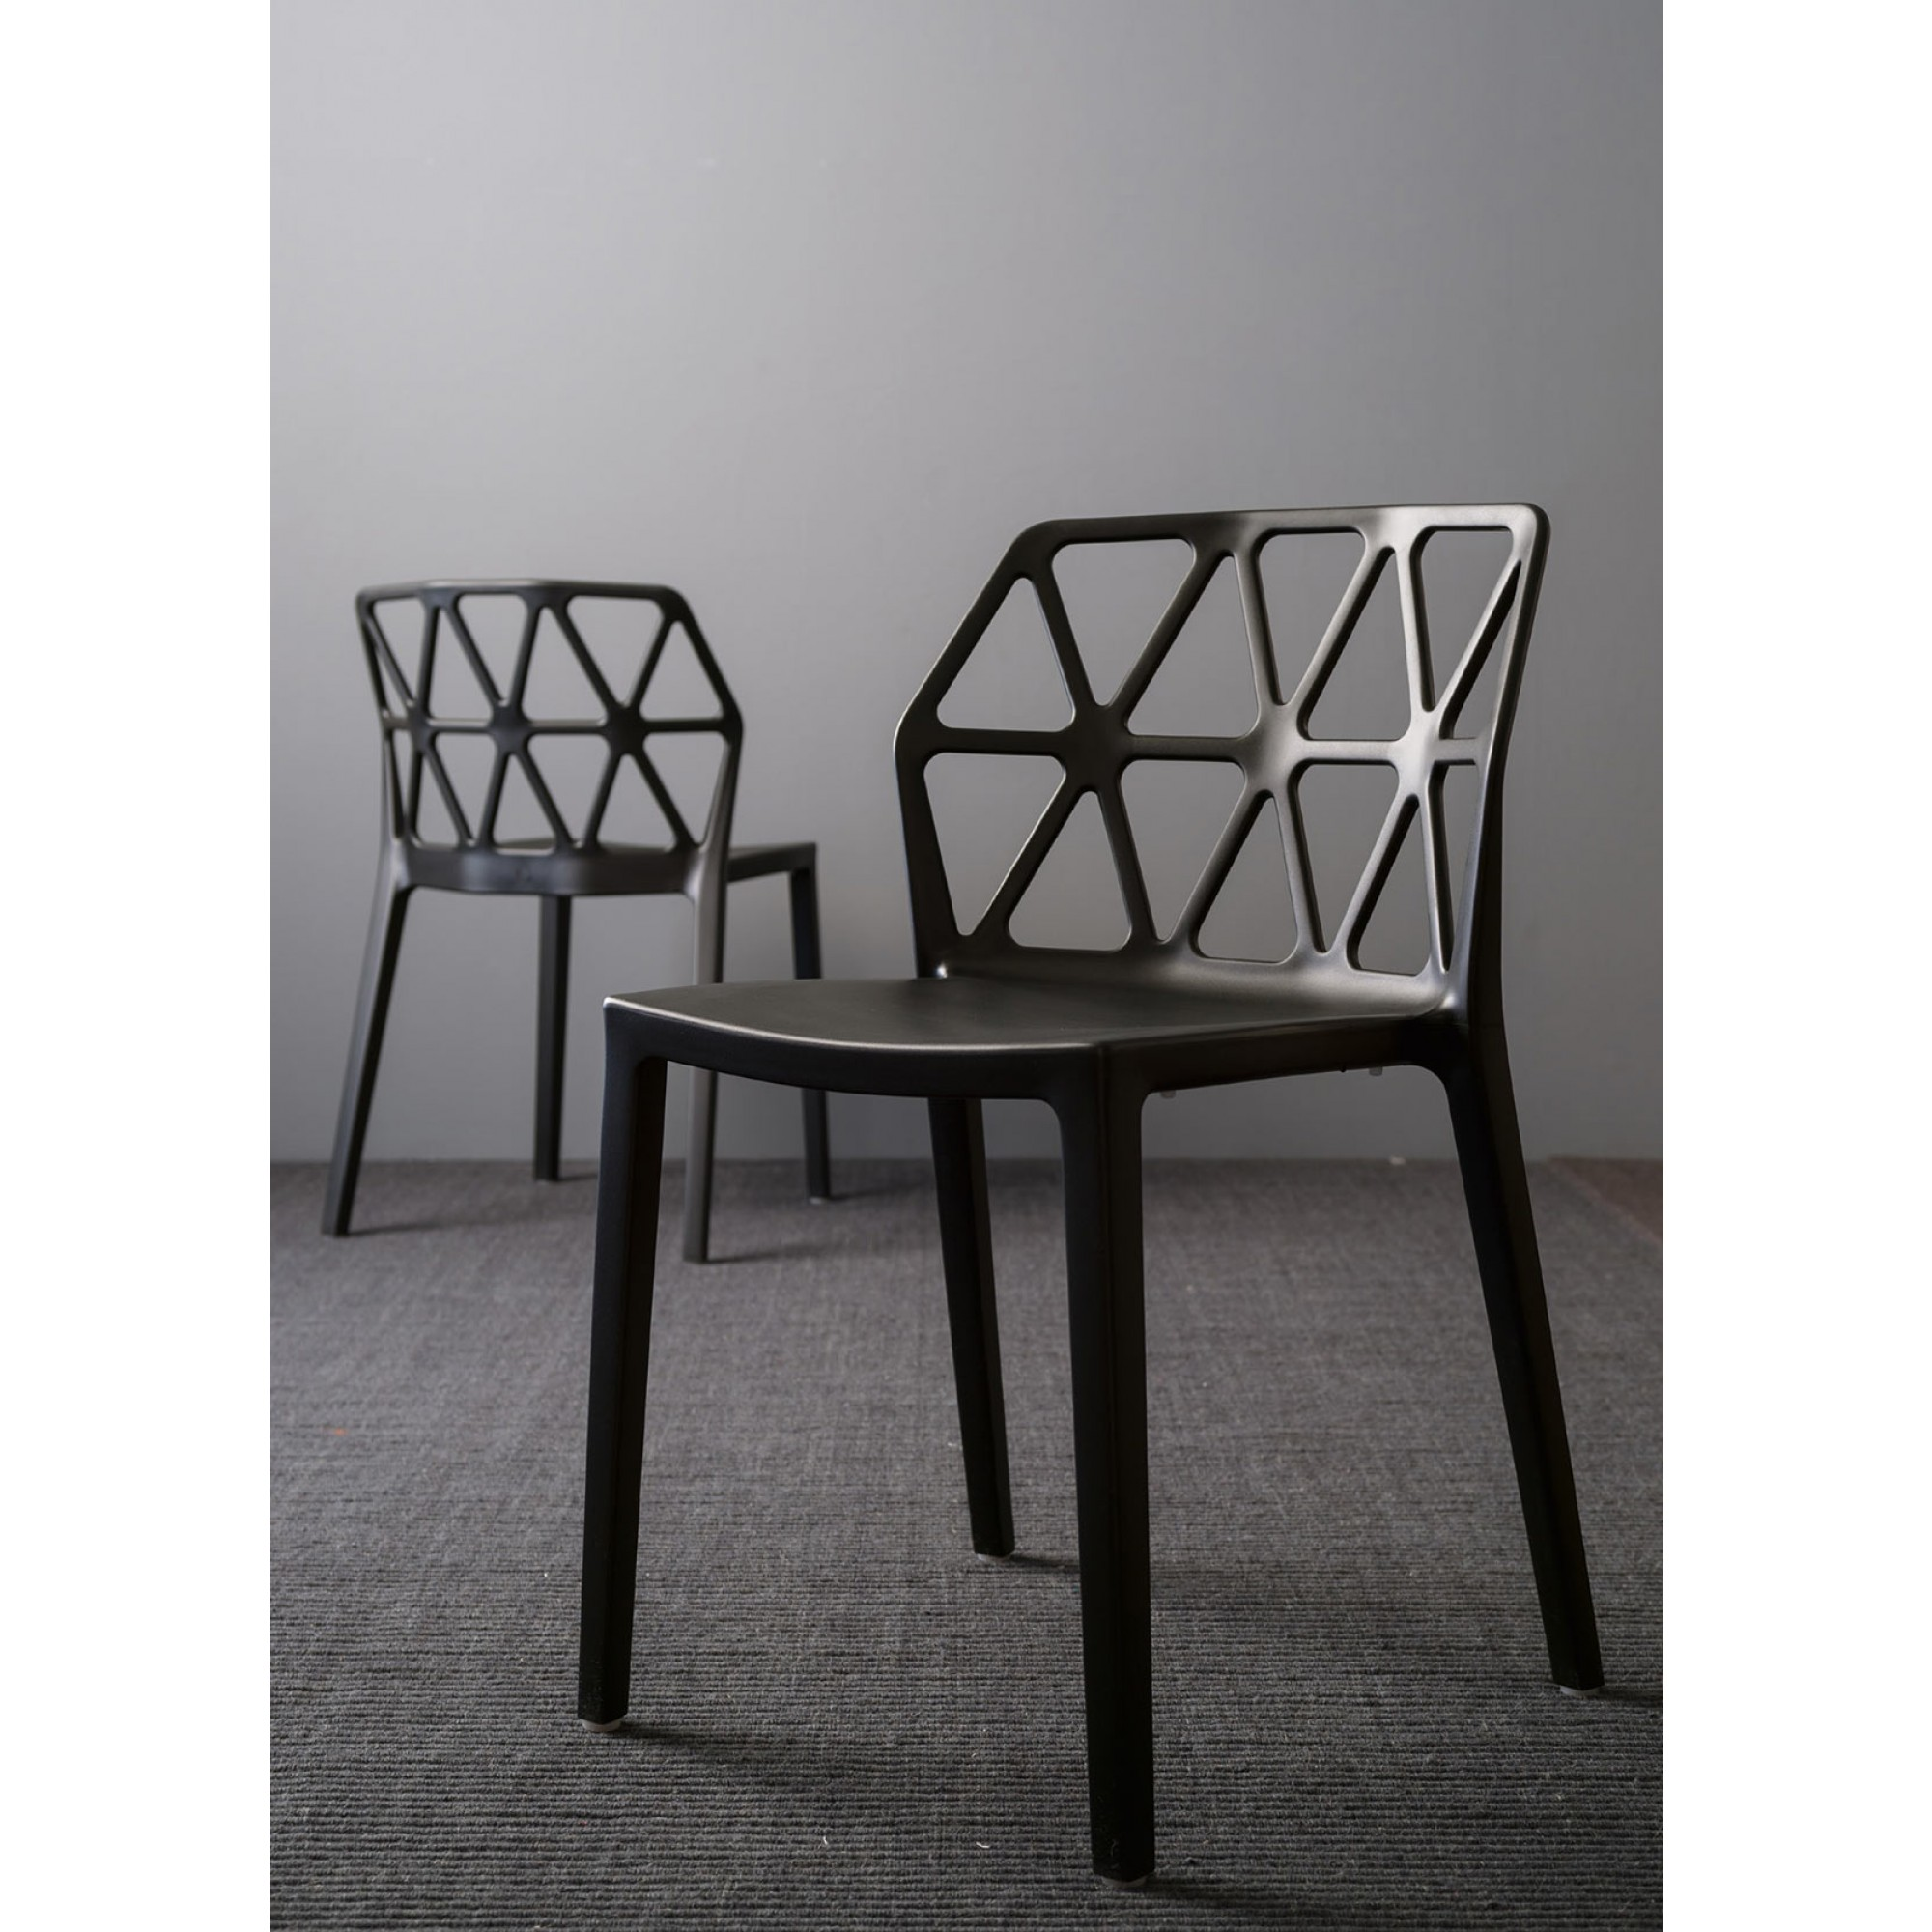 Sedia Calligaris Alchemia Alchemia Chairs Seats Connubia By Calligaris Masonionline